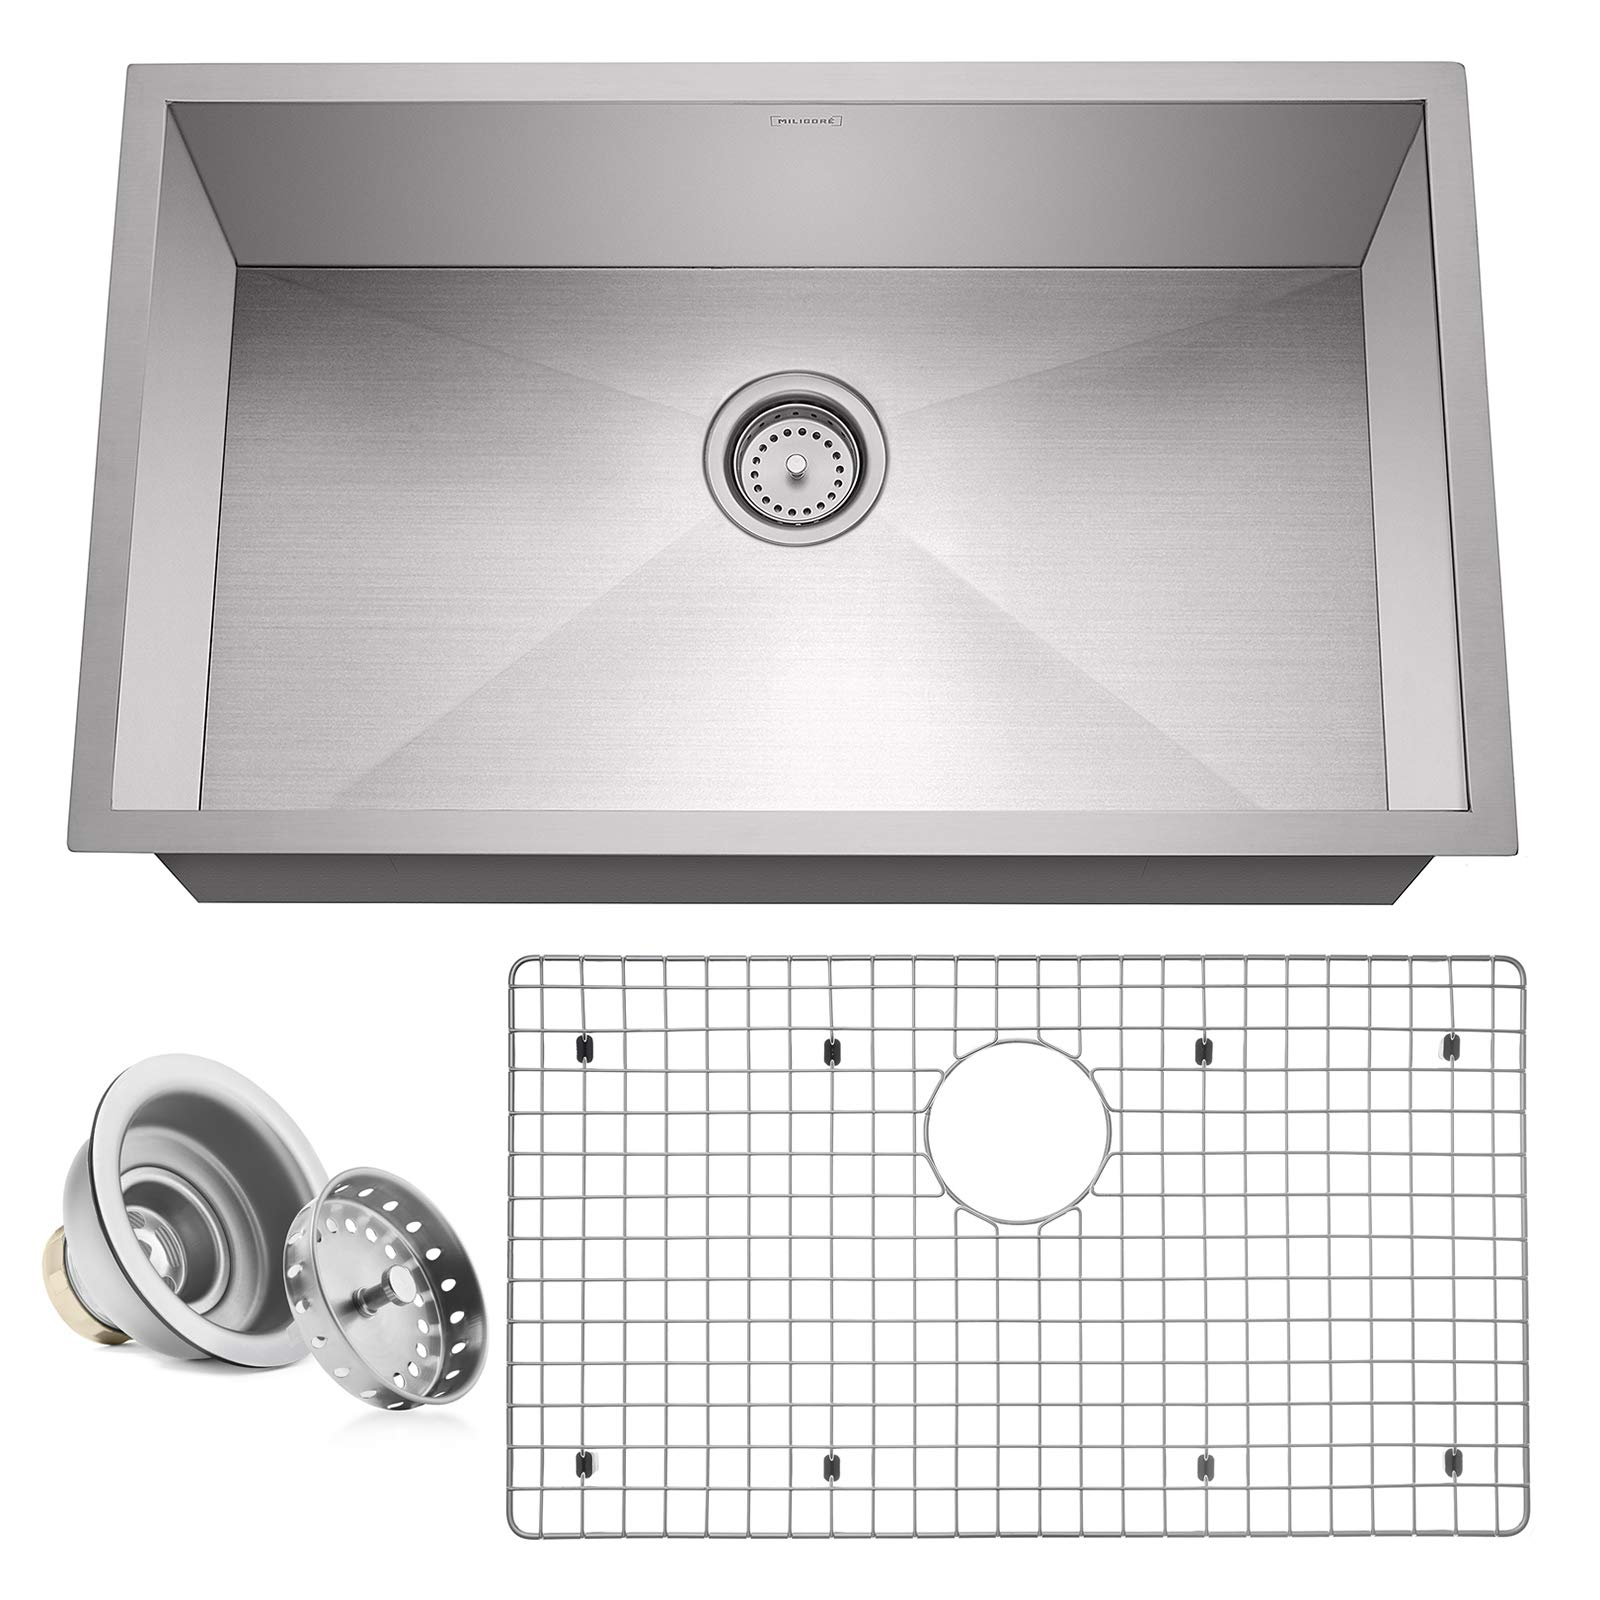 Miligore 30'' x 18'' x 10'' Deep Single Bowl Undermount Zero Radius 16-Gauge Stainless Steel Kitchen Sink - Includes Drain/Grid by Miligore